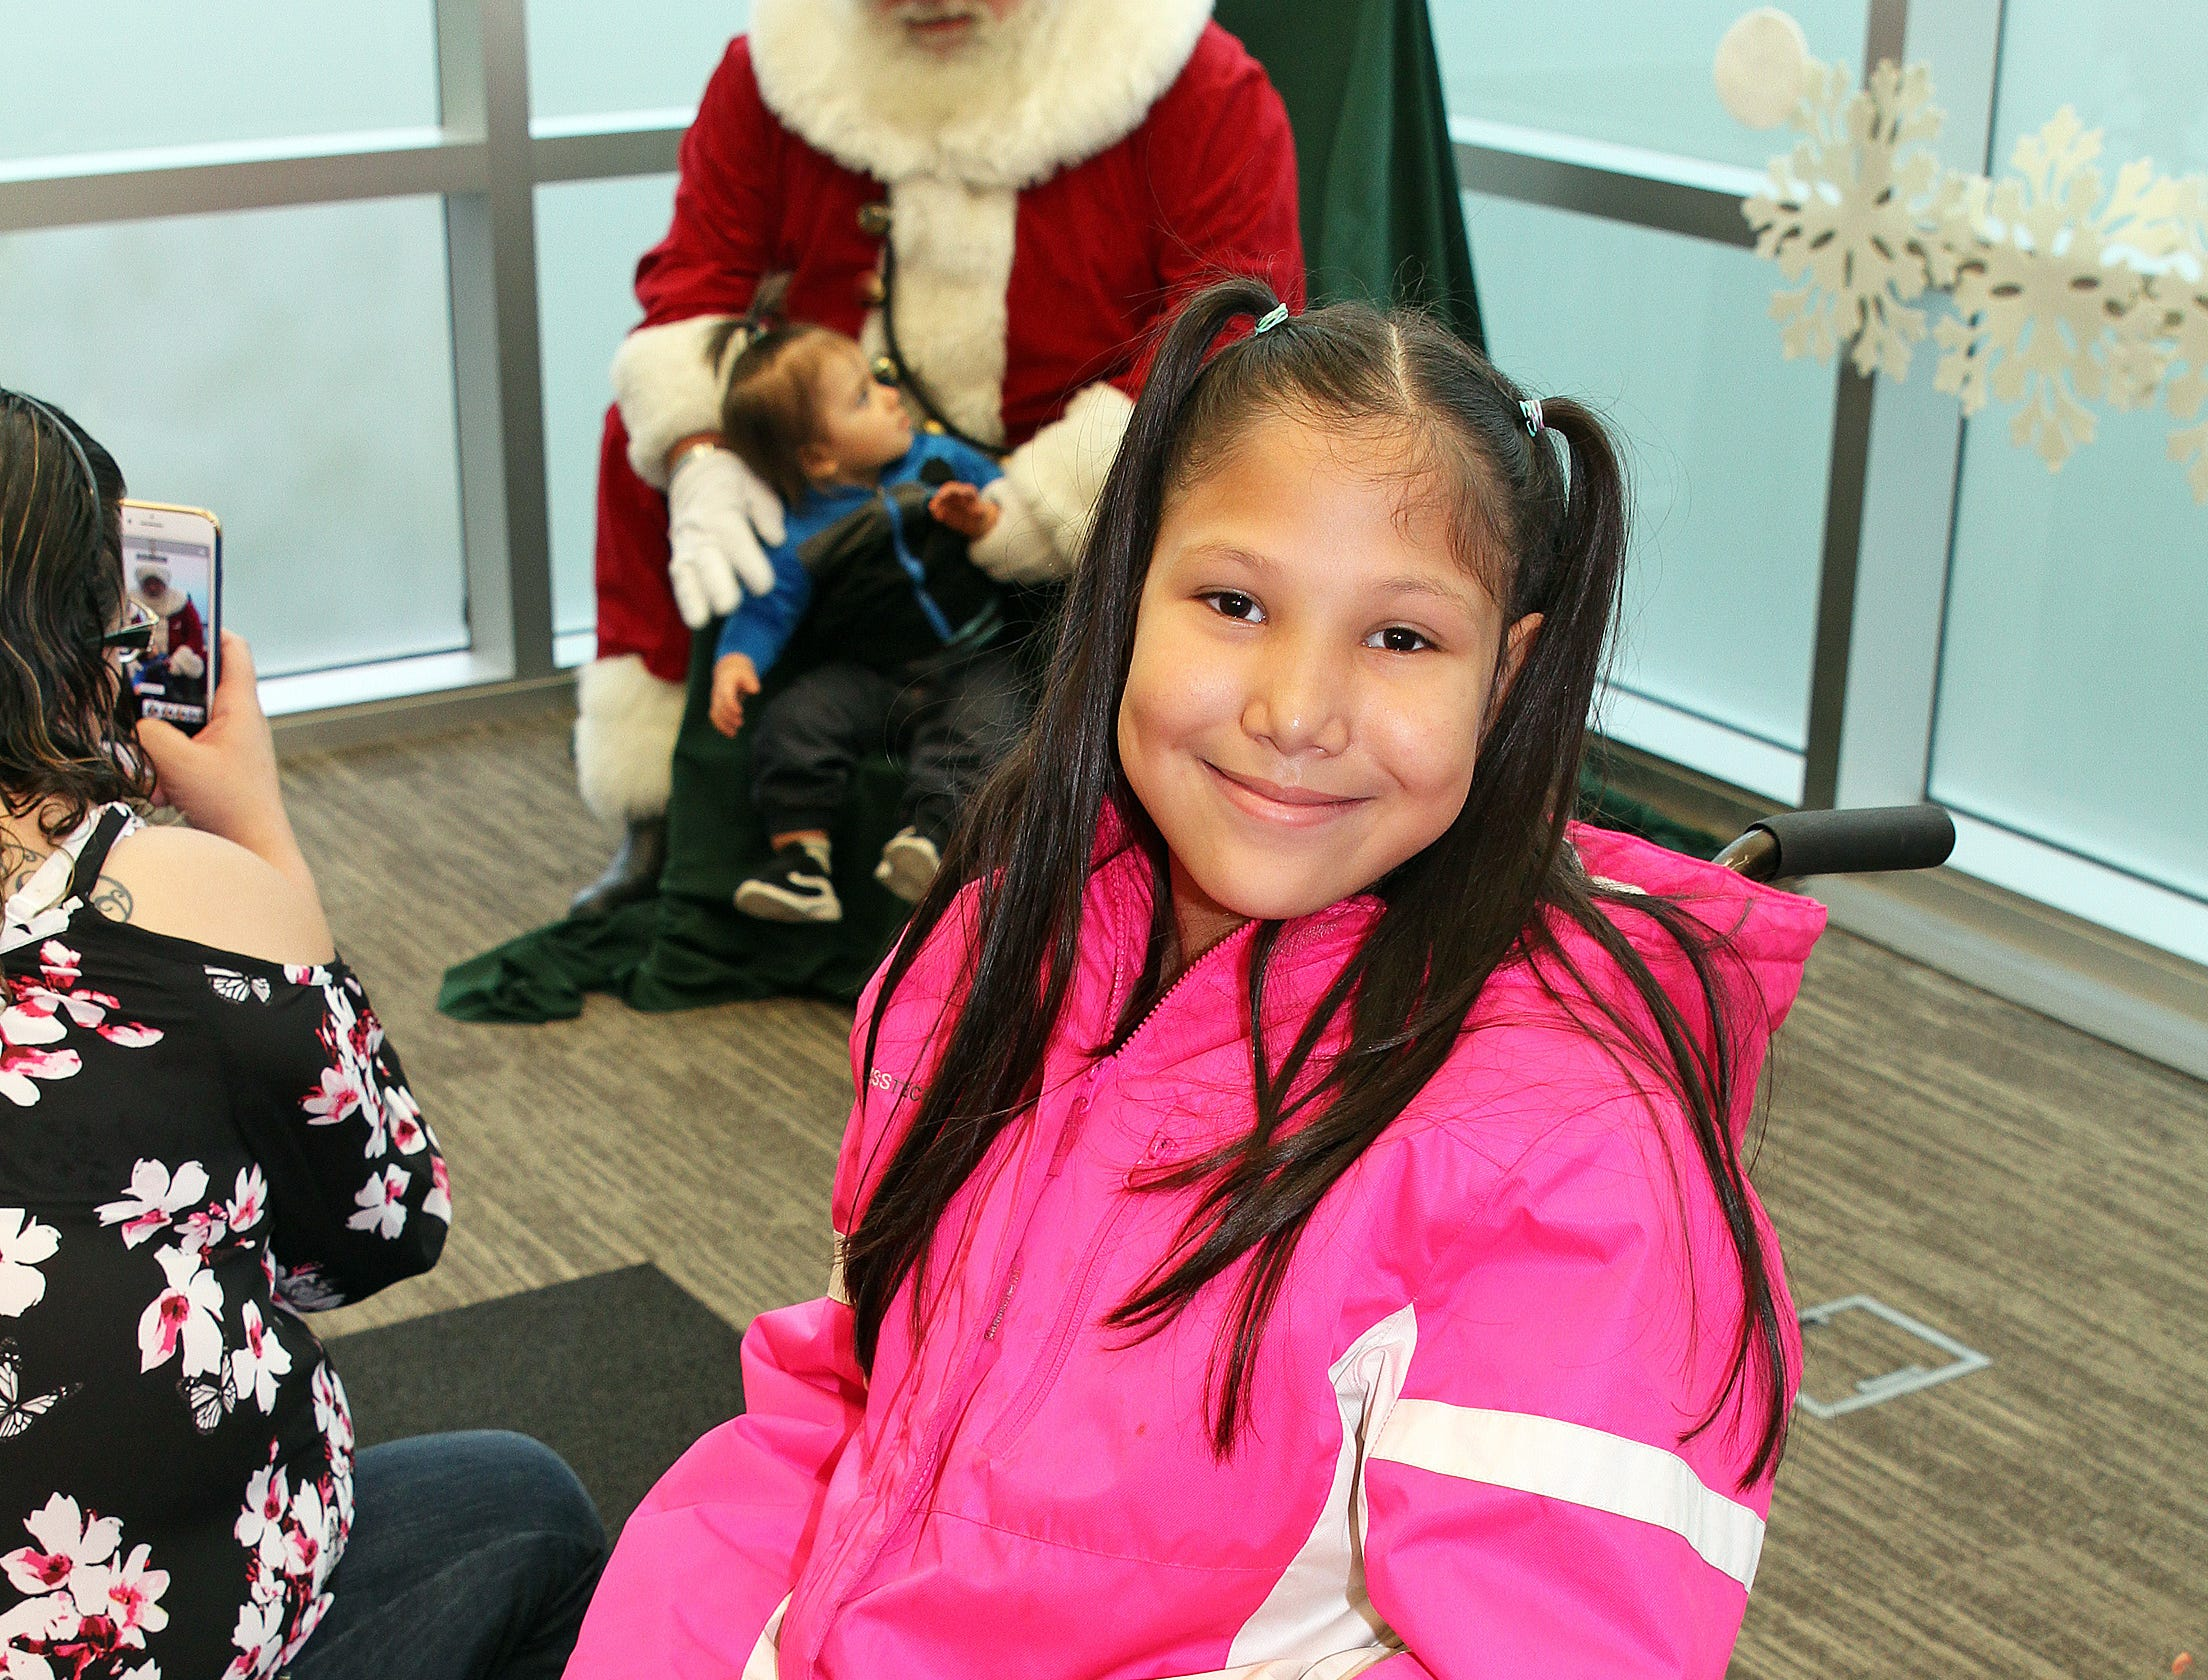 Danica Mota, 9, of Johnston enjoyed her visit with Santa during Holidays in Johnston on Saturday, Dec. 1, 2018 at the Johnston Public Library featuring a gingerbread house contest, cookie decorating, holiday music performed by the Johnston Middle School Ninth Grade Chamber Choir, story time and Santa.